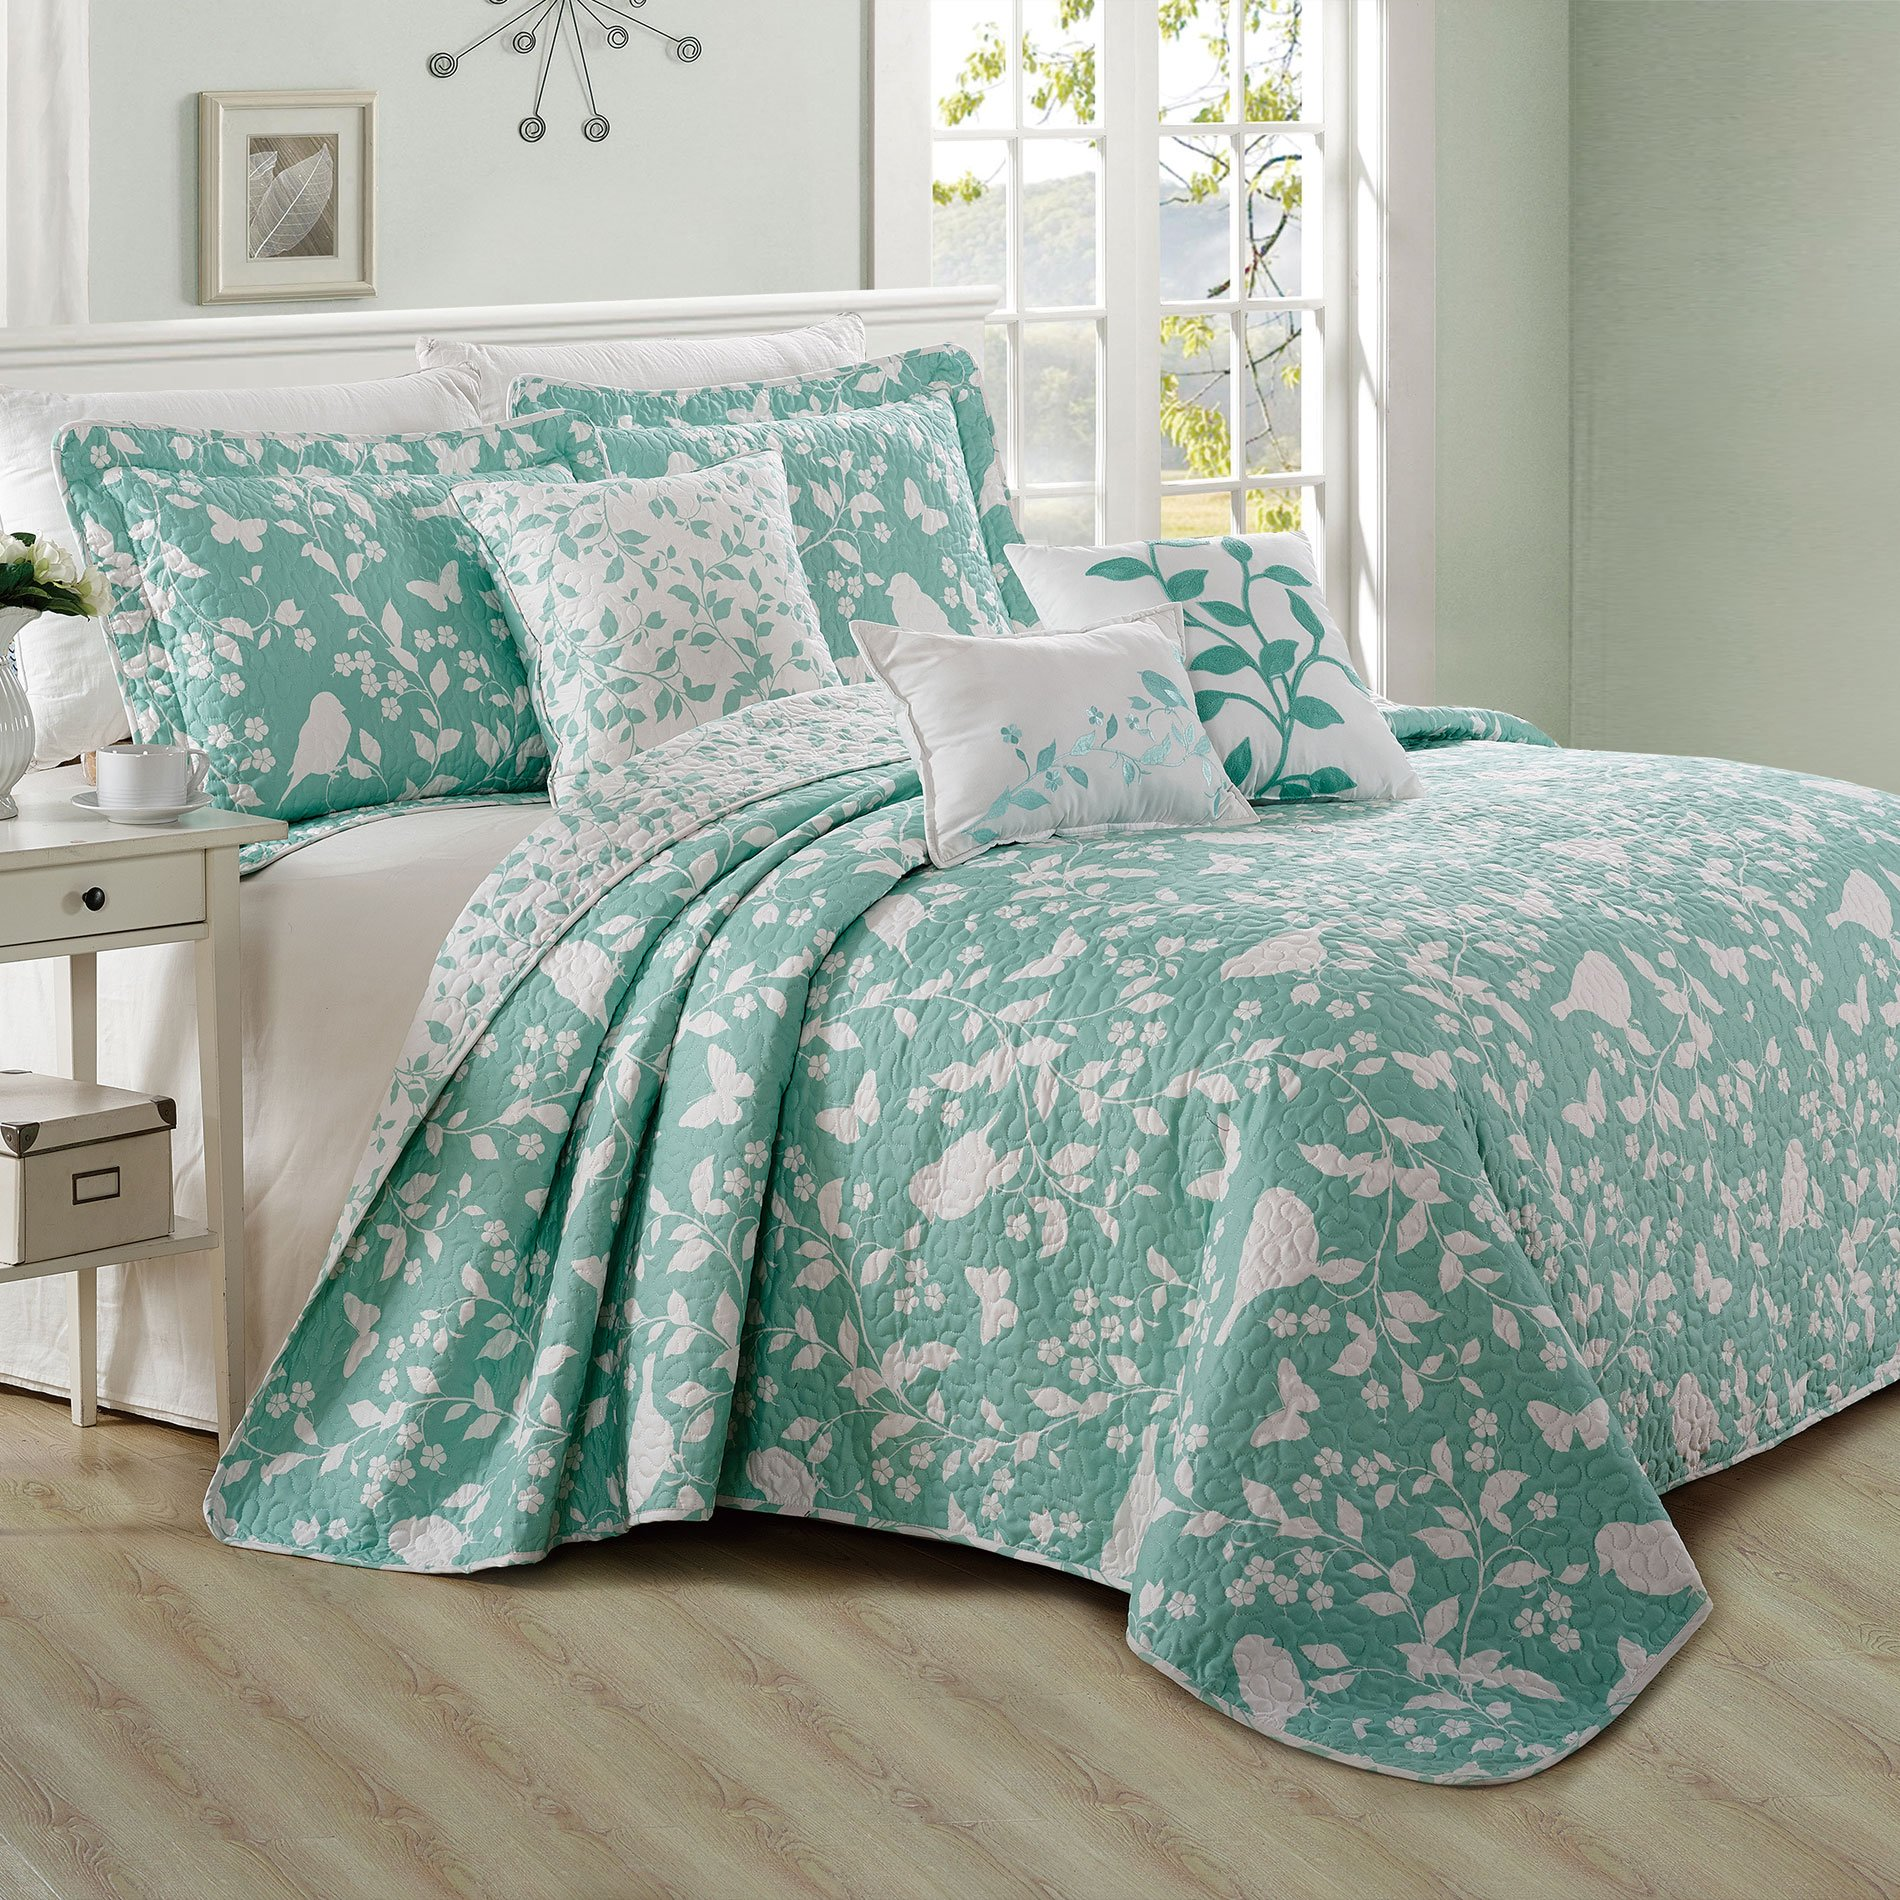 Home Soft Things Serenta 6 Piece Bird Song Printed Microfiber Quilts Coverlet Set, Queen, Teal Turquoise